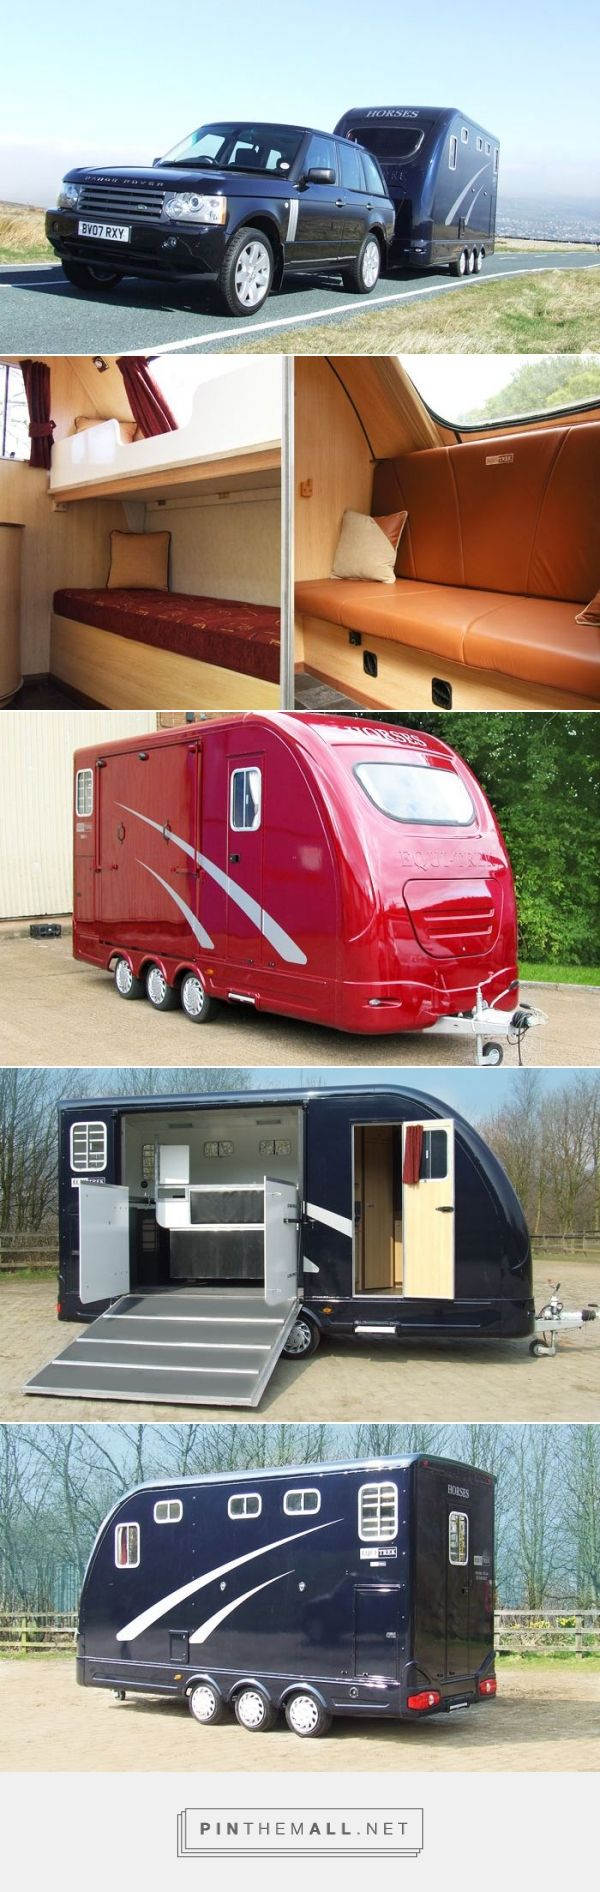 I saw these at the Horse Expo and they are awesome! Star Treka, Horse Trailers | Horsebox Manufacturers UK | Equi-Trek - created via http://pinthemall.net